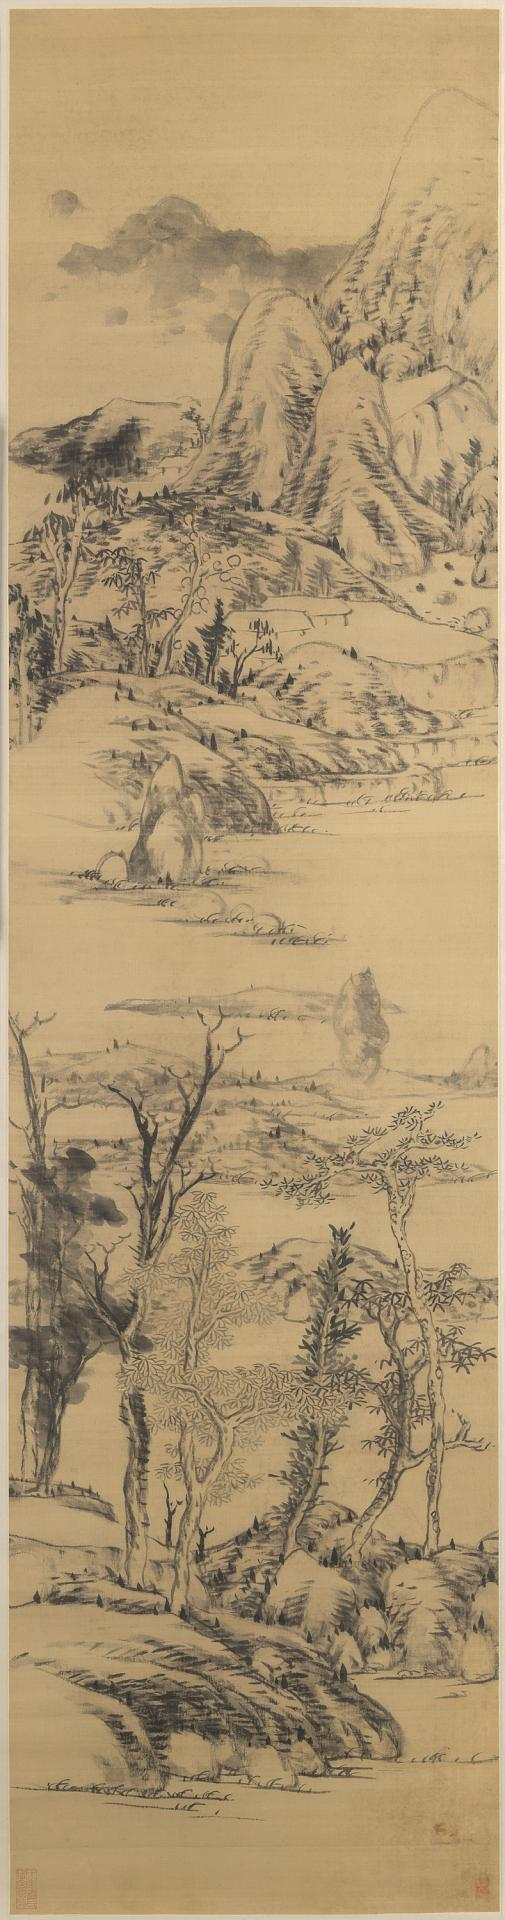 Landscape in the style of Wang Meng, (c. 1309-1385)